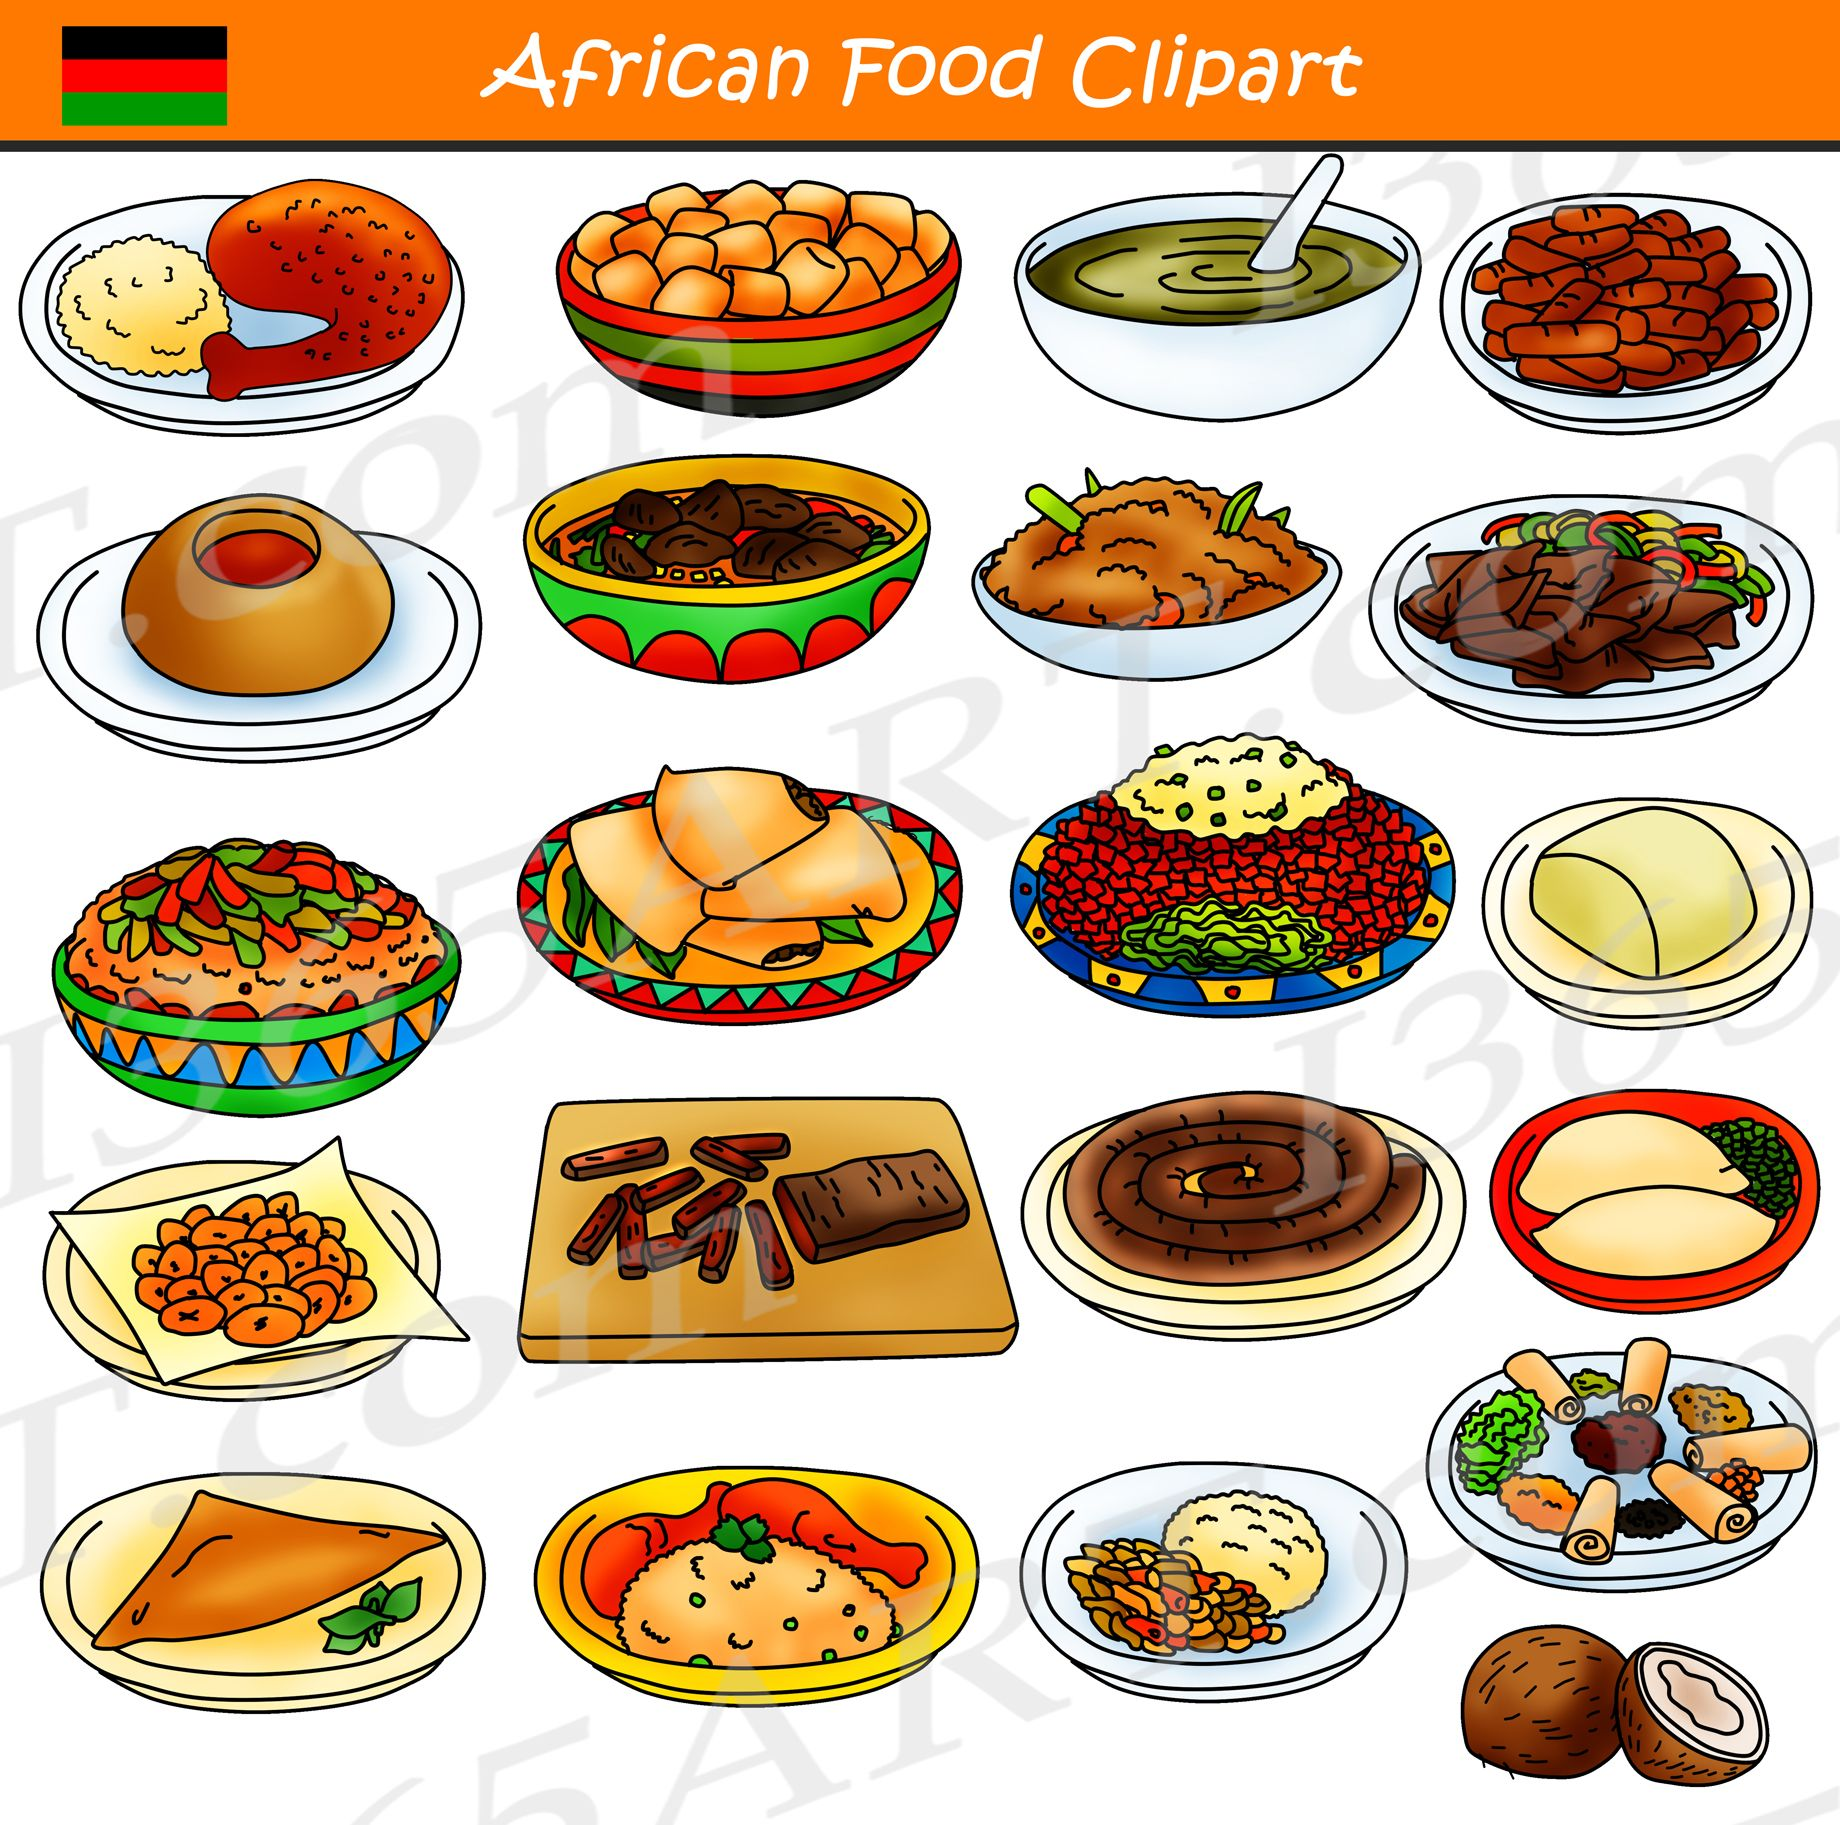 African Food Clipart Commercial Download  Food Clipart -9237